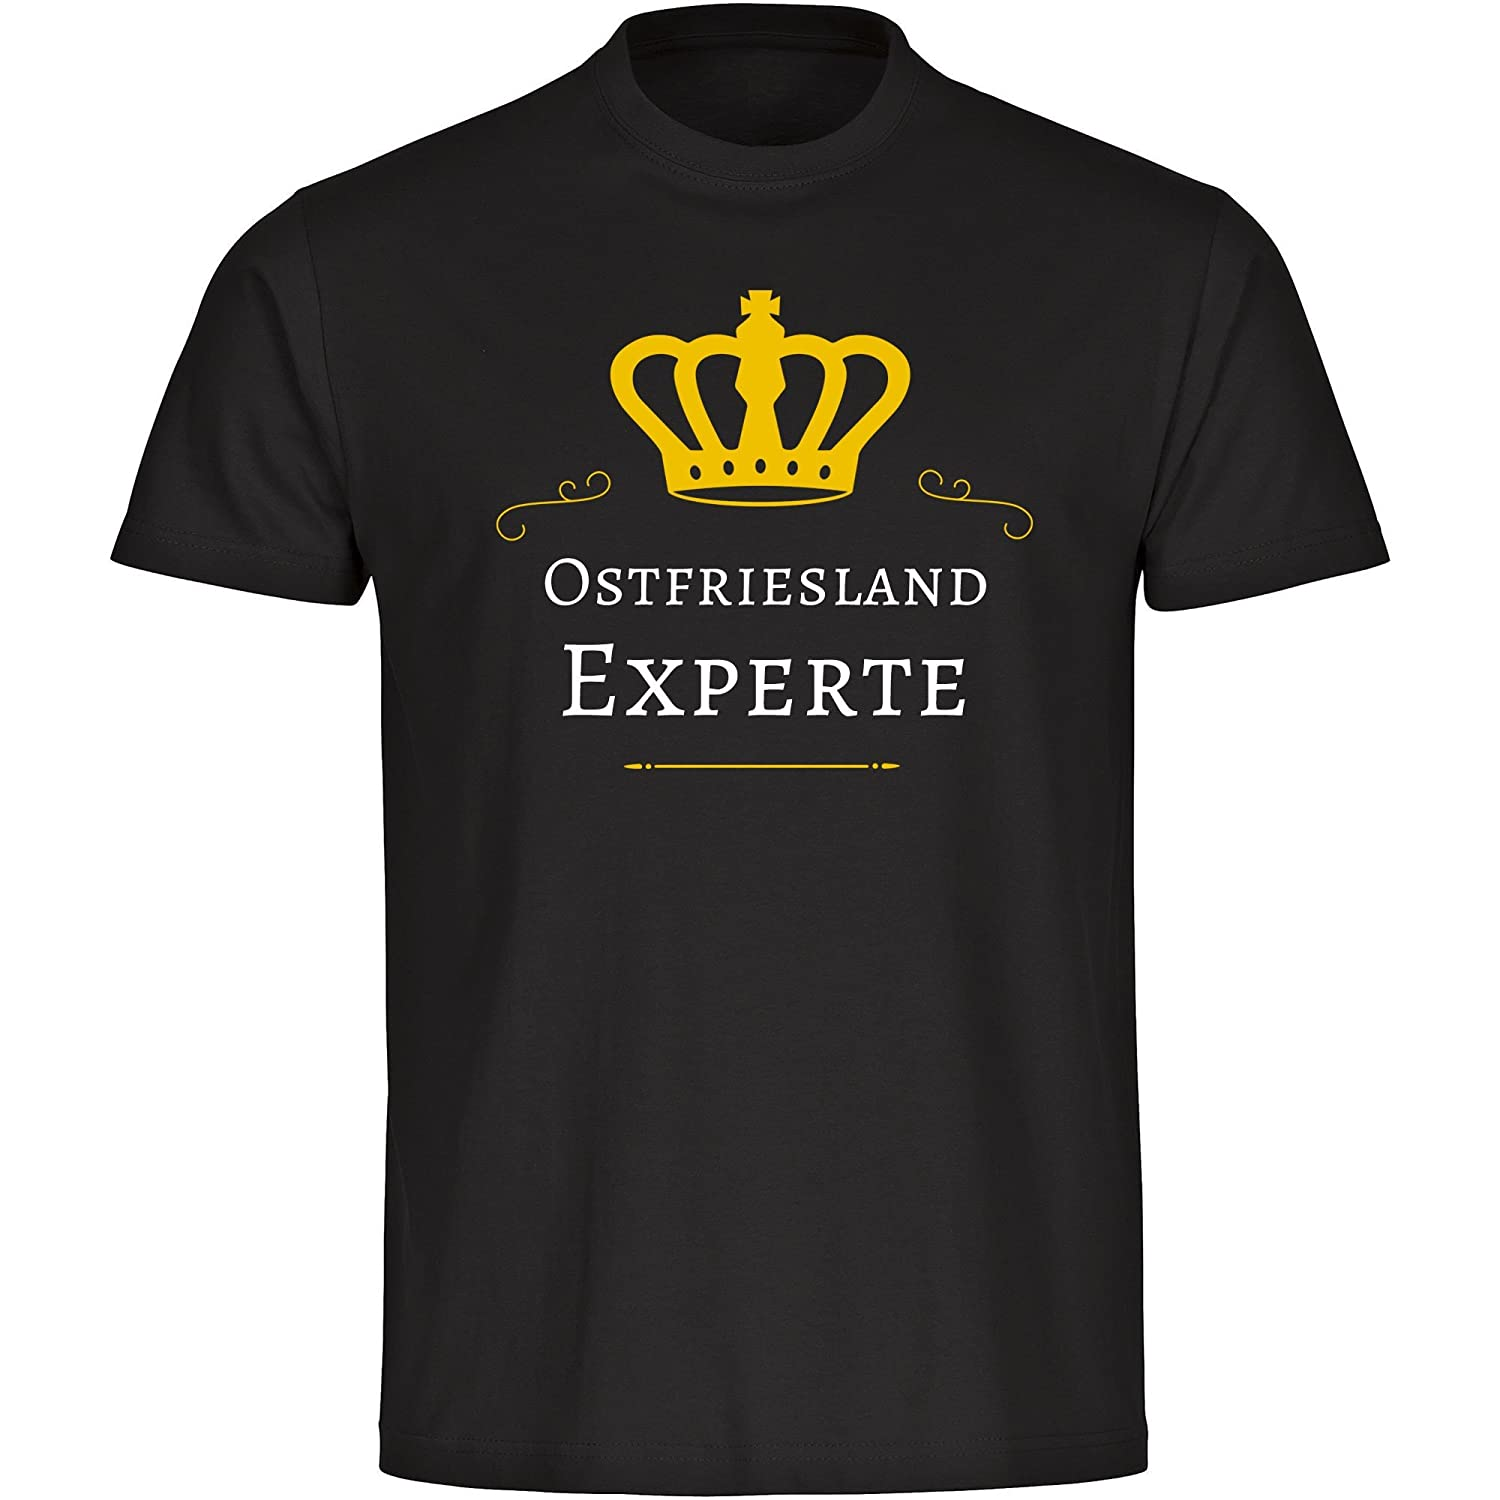 Ostfriesland Expert Men's Black T-Shirt Size S to 5XL